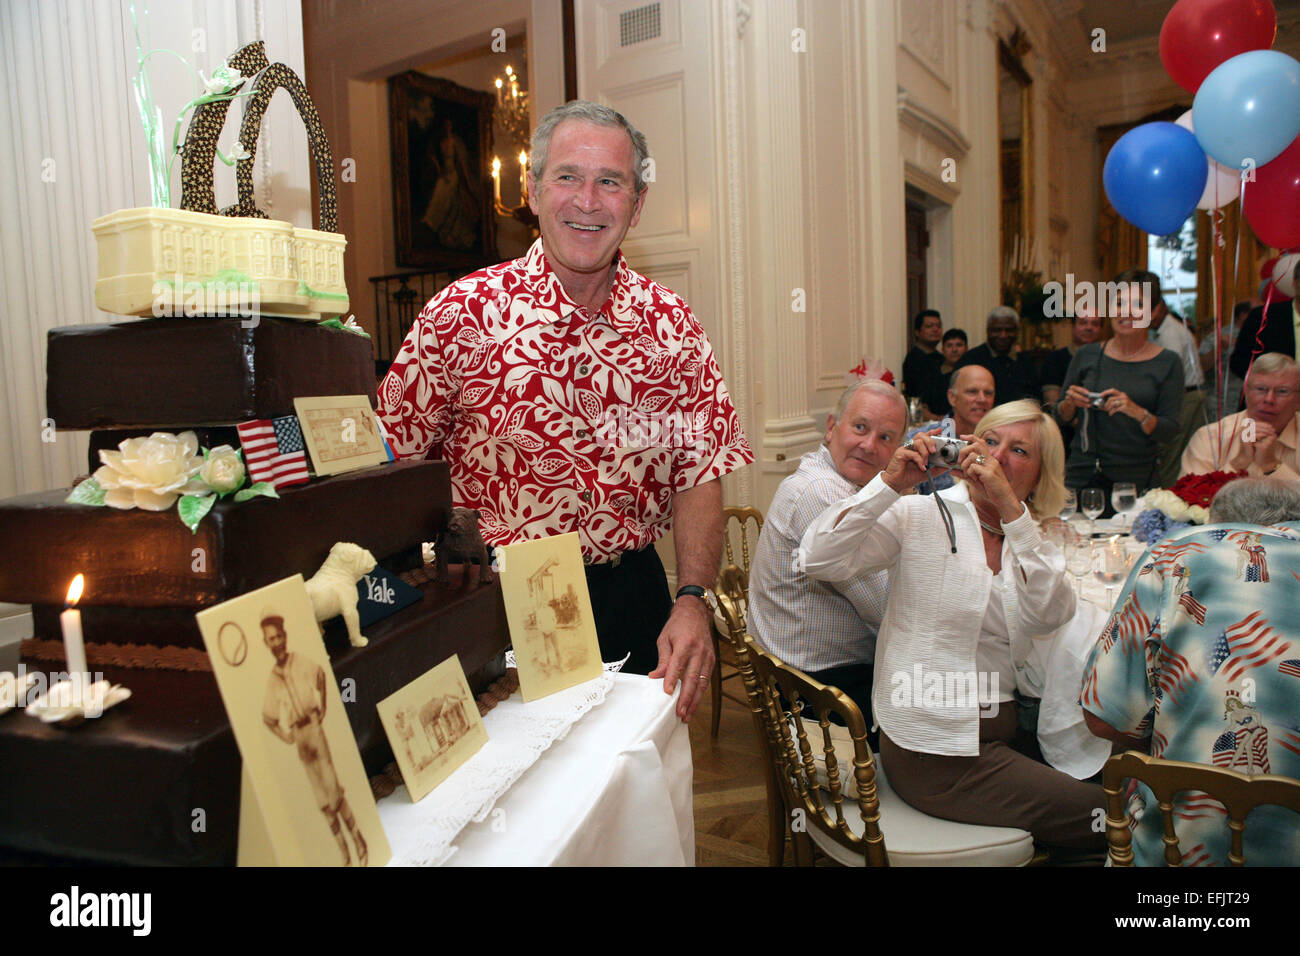 a2e8781ba US President George W. Bush wearing a Hawaiian shirt smiles as he is  presented with a birthday cake during a dinner party at the White House  July 4, ...